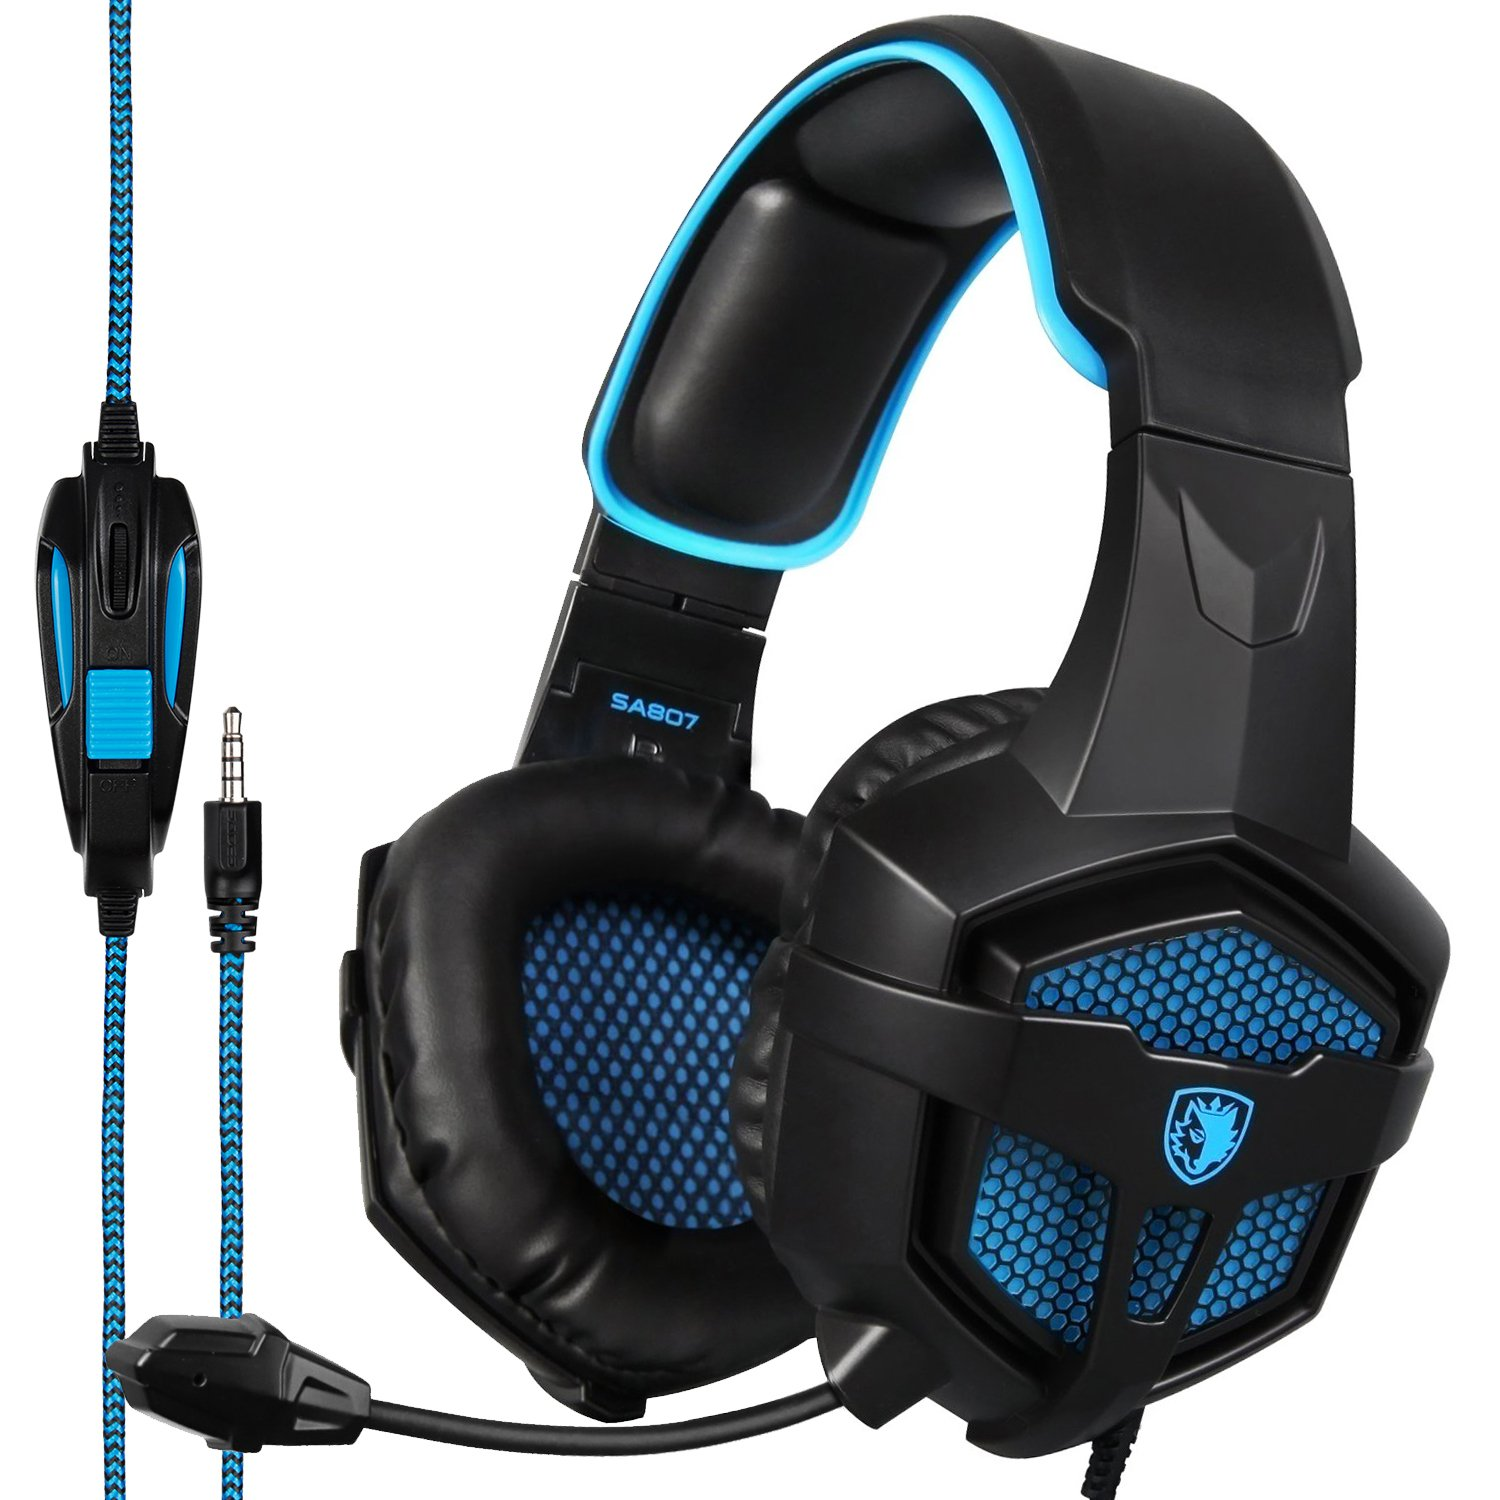 Sades SA807 Stereo Gaming Headsets Over Ear Heaphones With Microphone Noise Isolating For New Xbox one PS4 PC Laptop Mac iPad Mobile(Black & Blue)